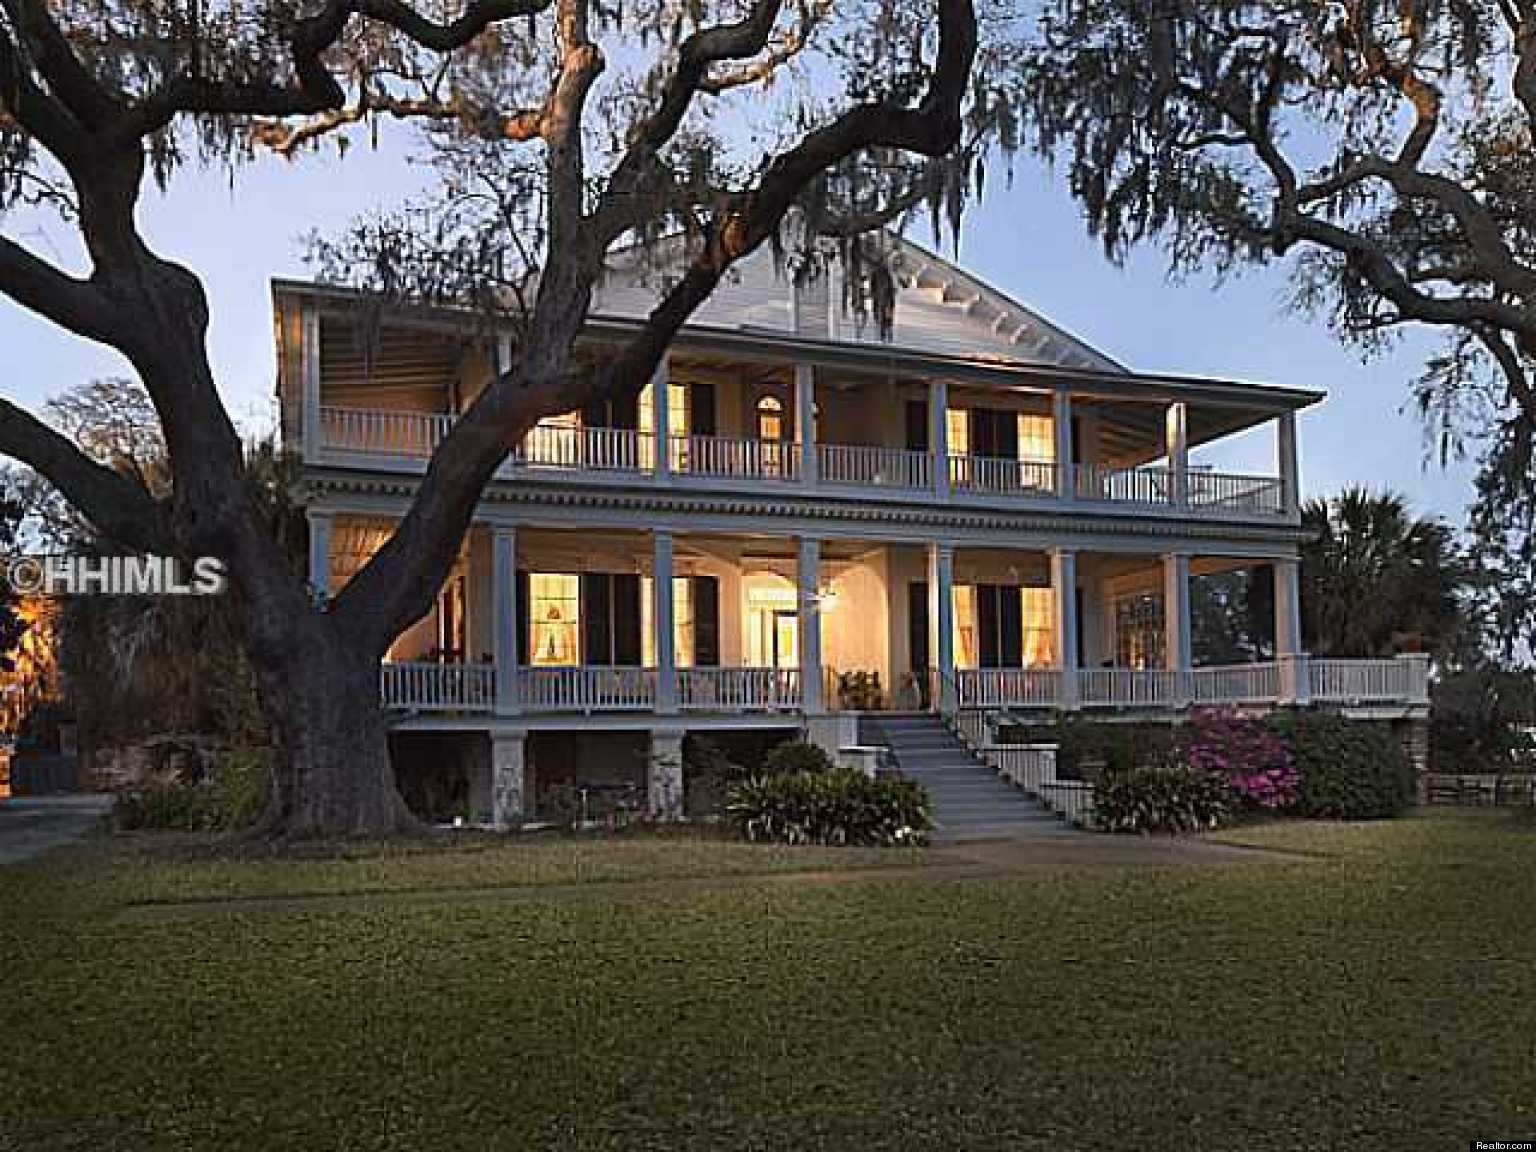 39 Big Chill 39 House For Sale At 4 5 Million Photos Huffpost